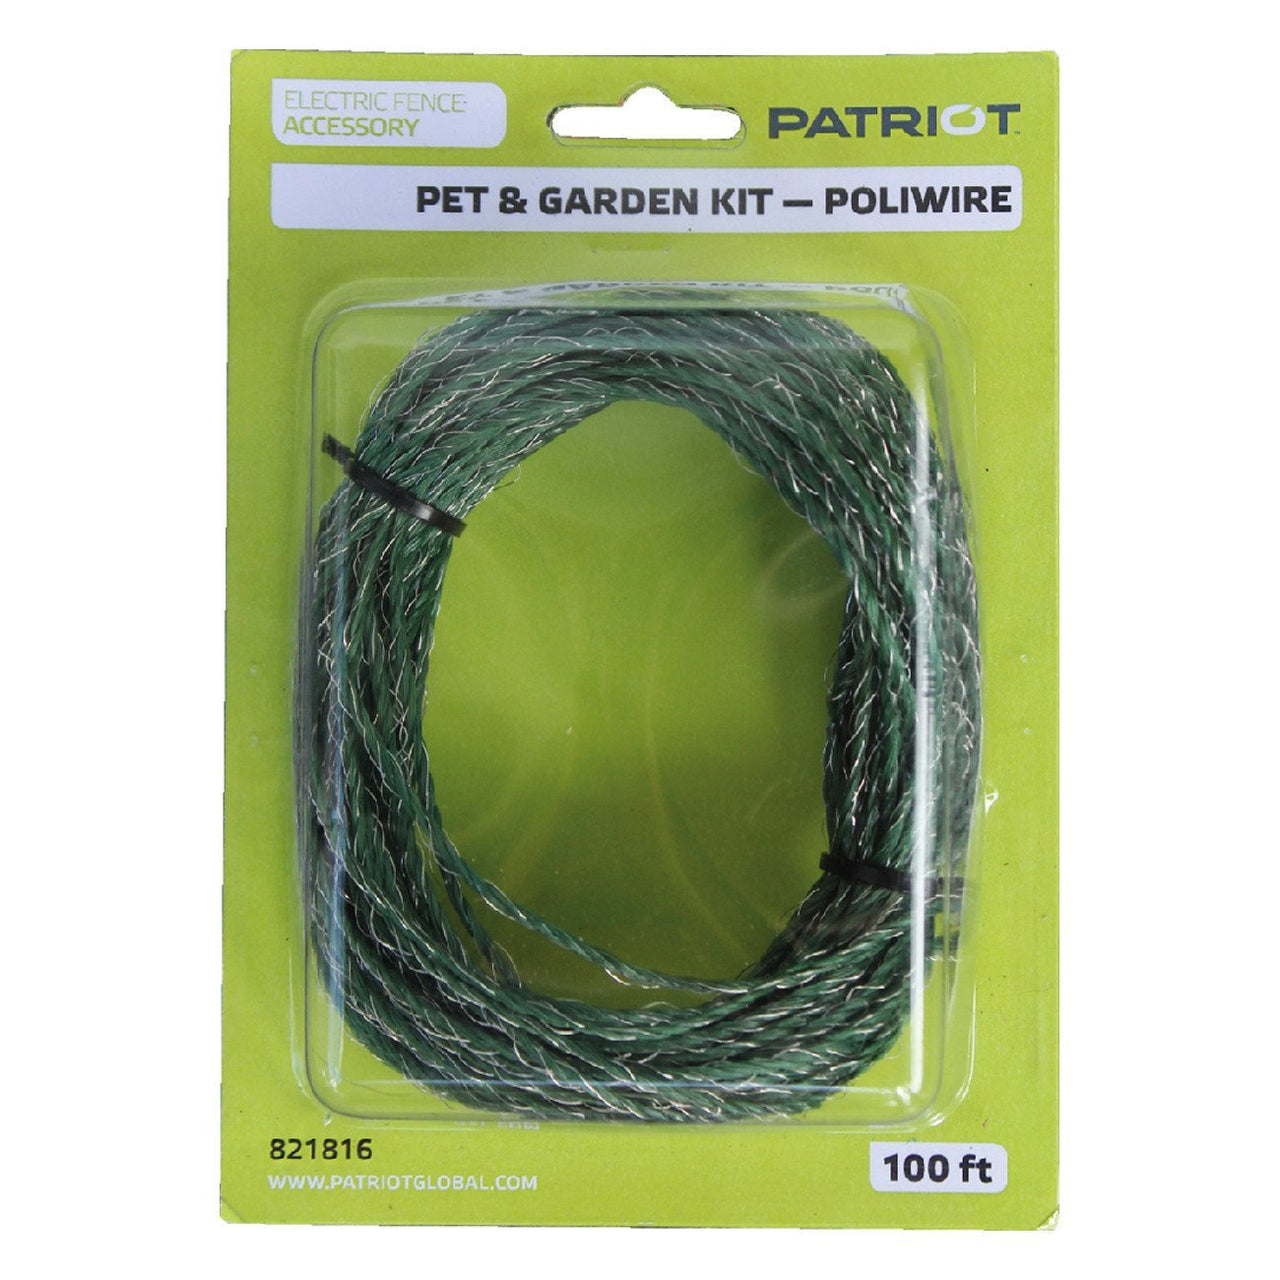 Patriot Poliwire Pet And Garden Wire 100 Green - Fencing Patriot - Canada